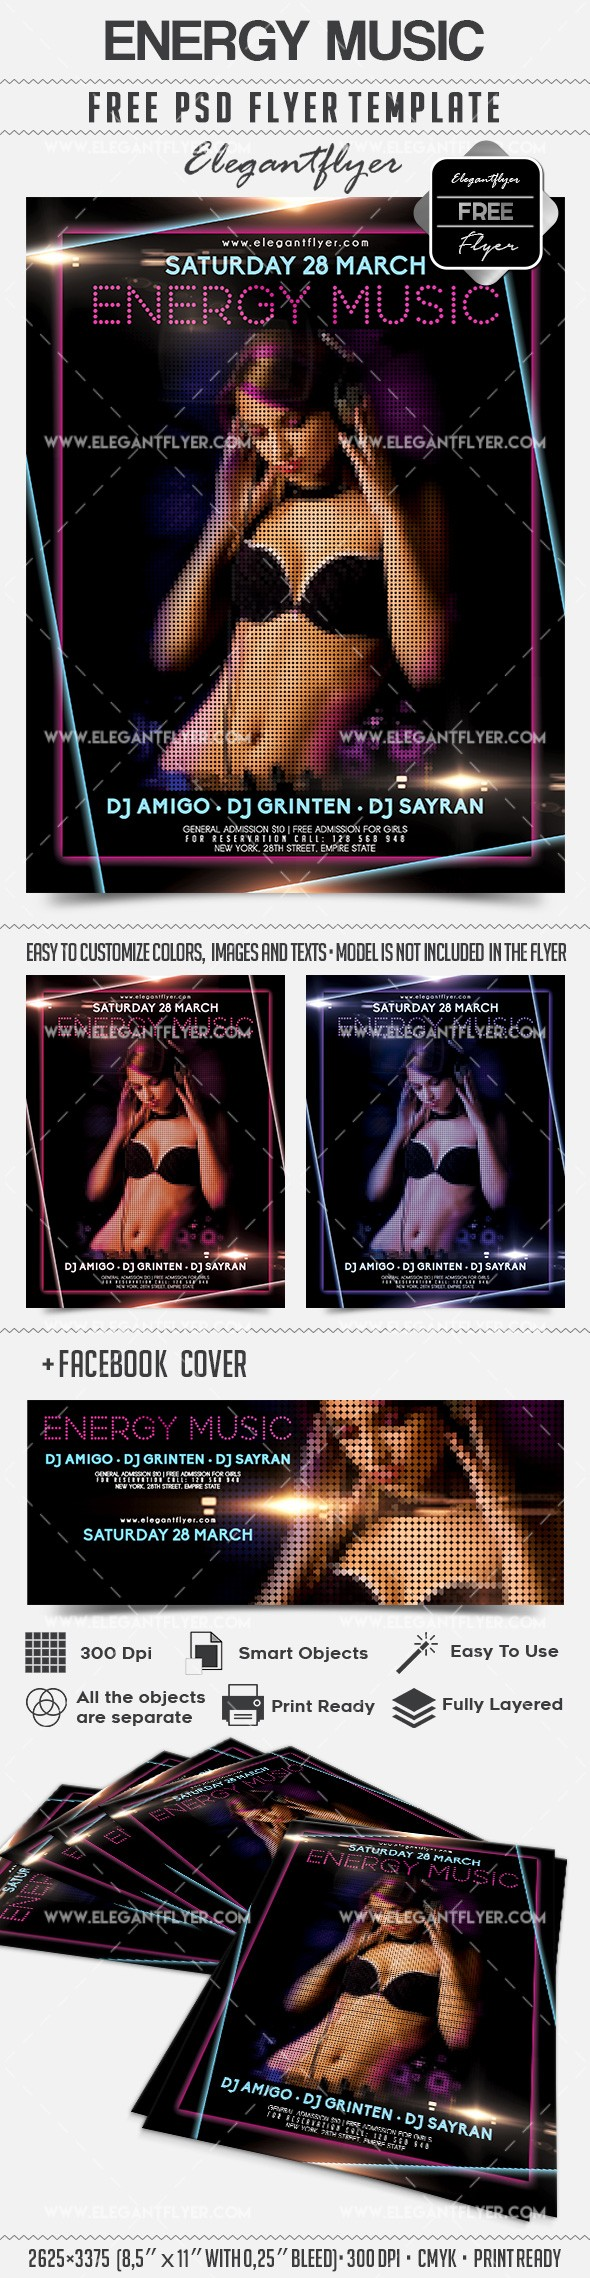 Energy Music – Free Flyer PSD Template